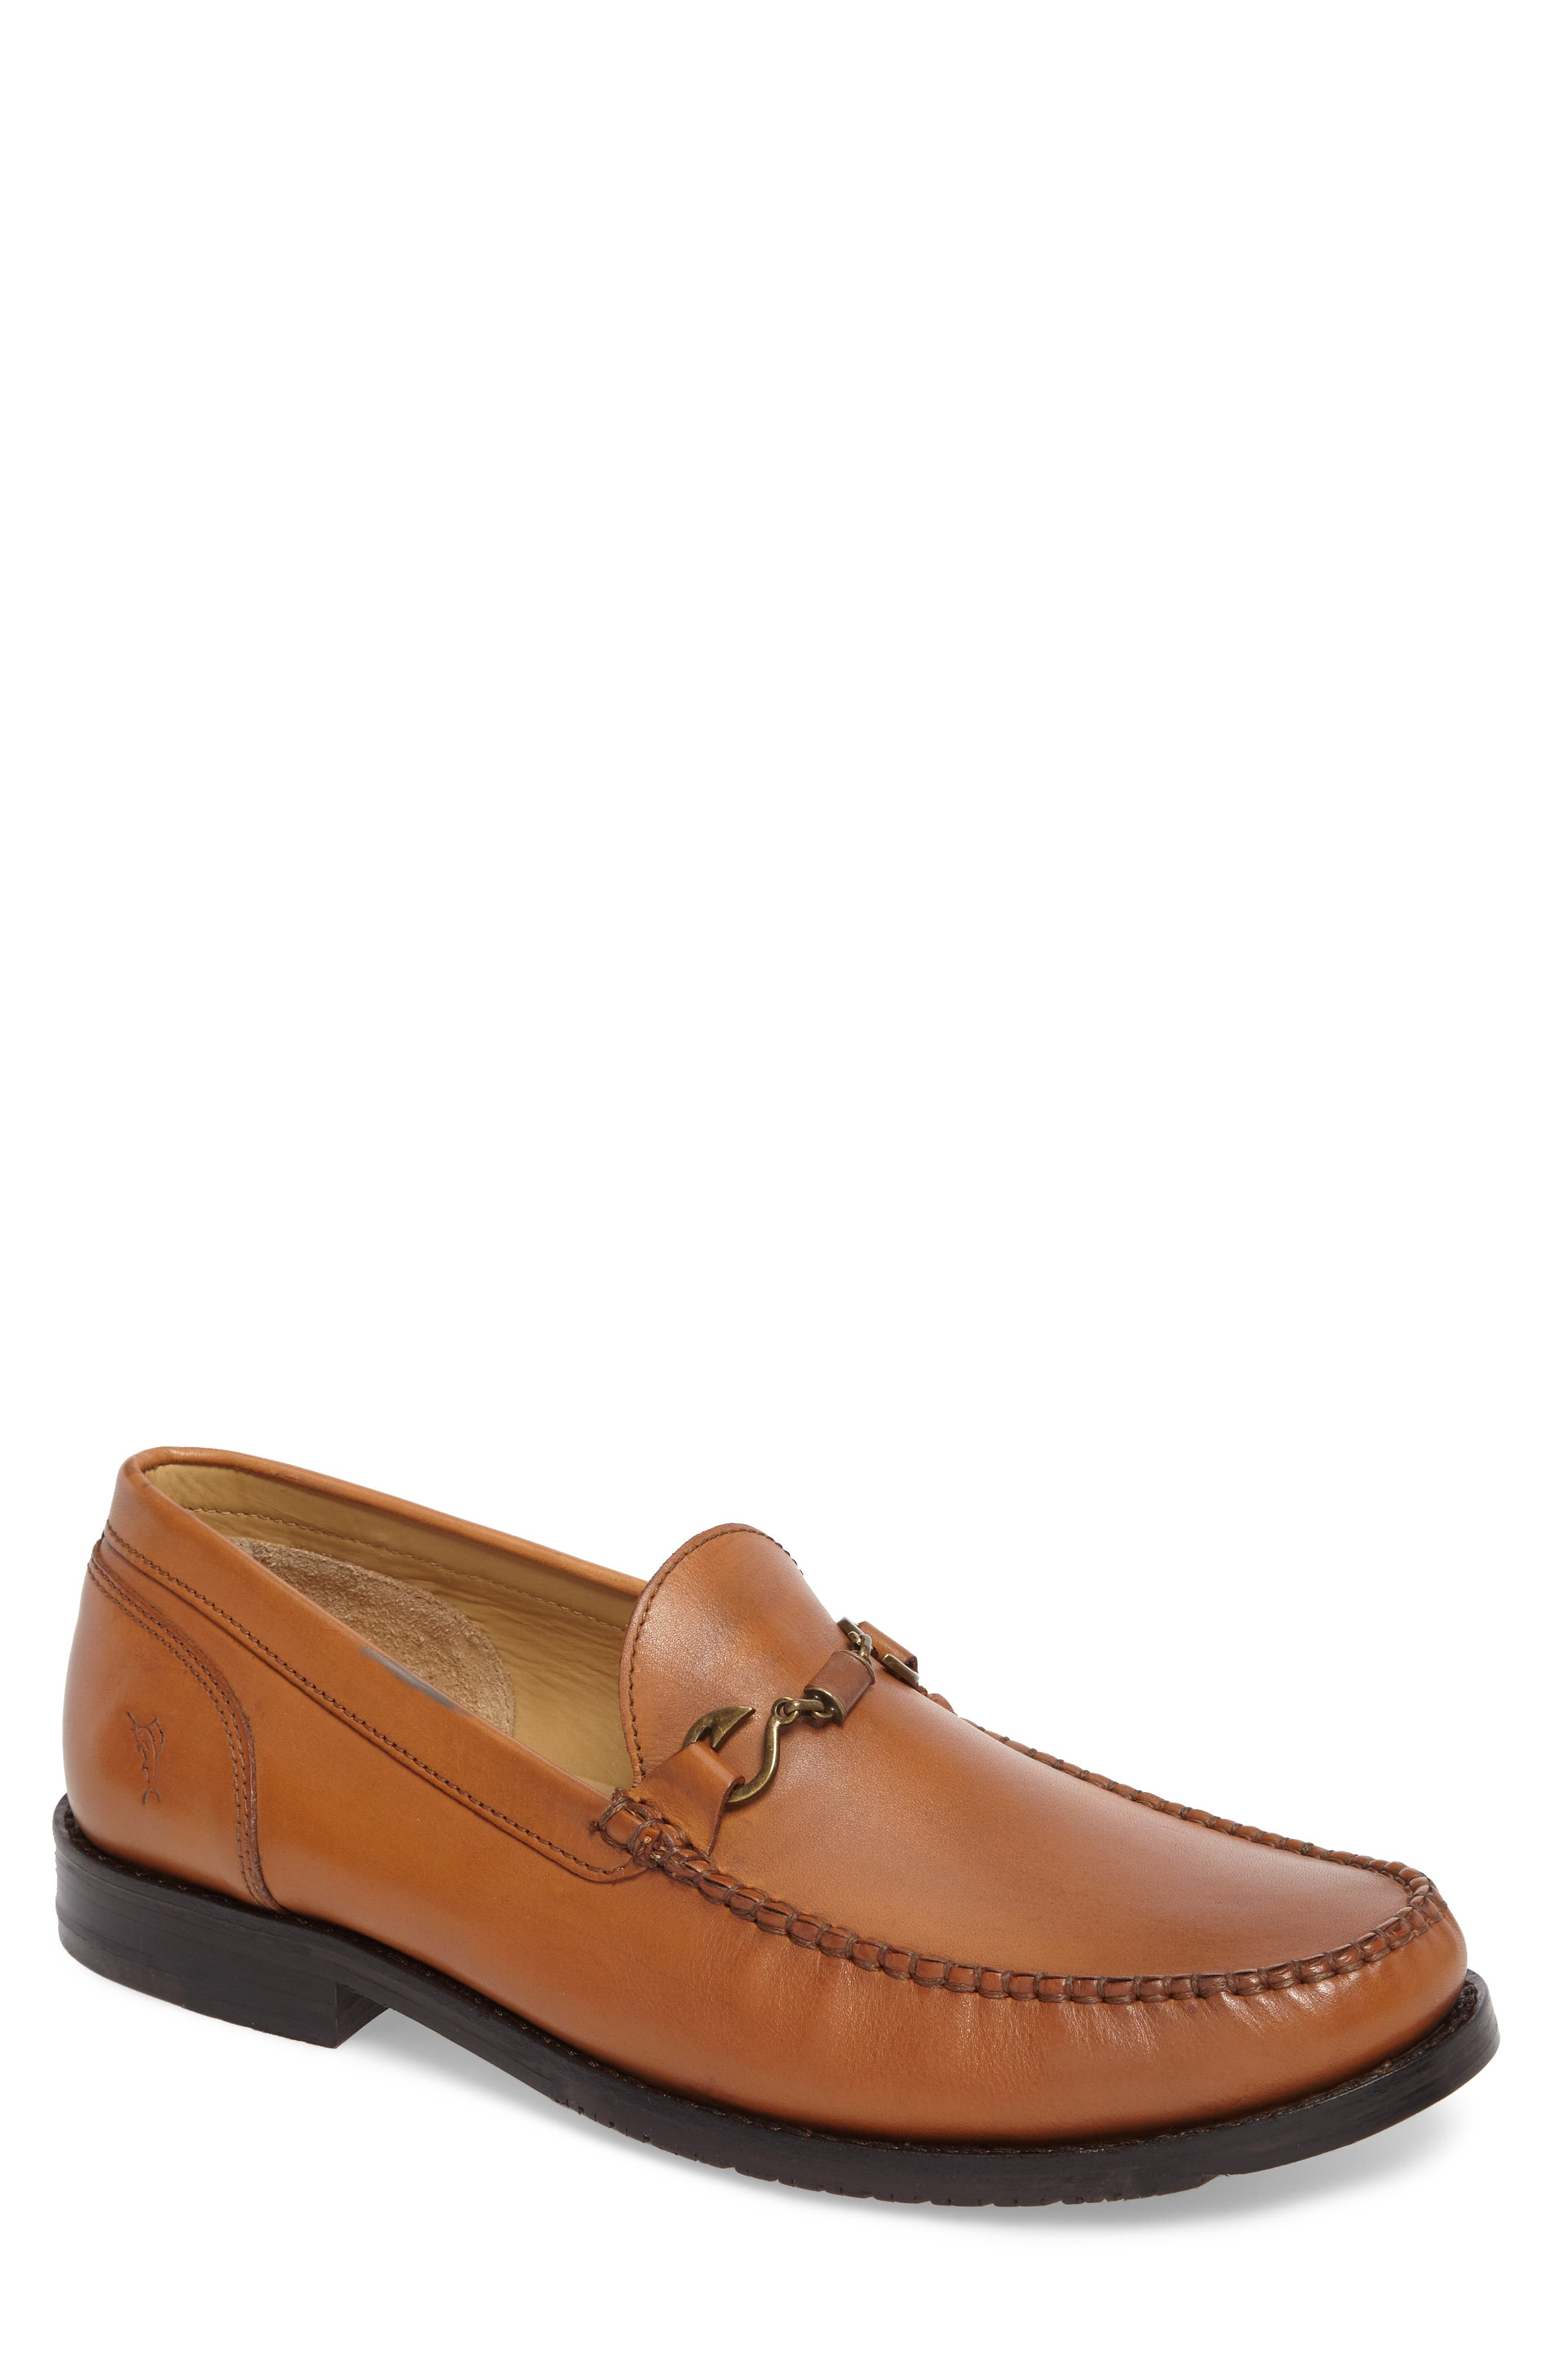 Maya Bay Bit Loafer,                         Main,                         color, TAN LEATHER